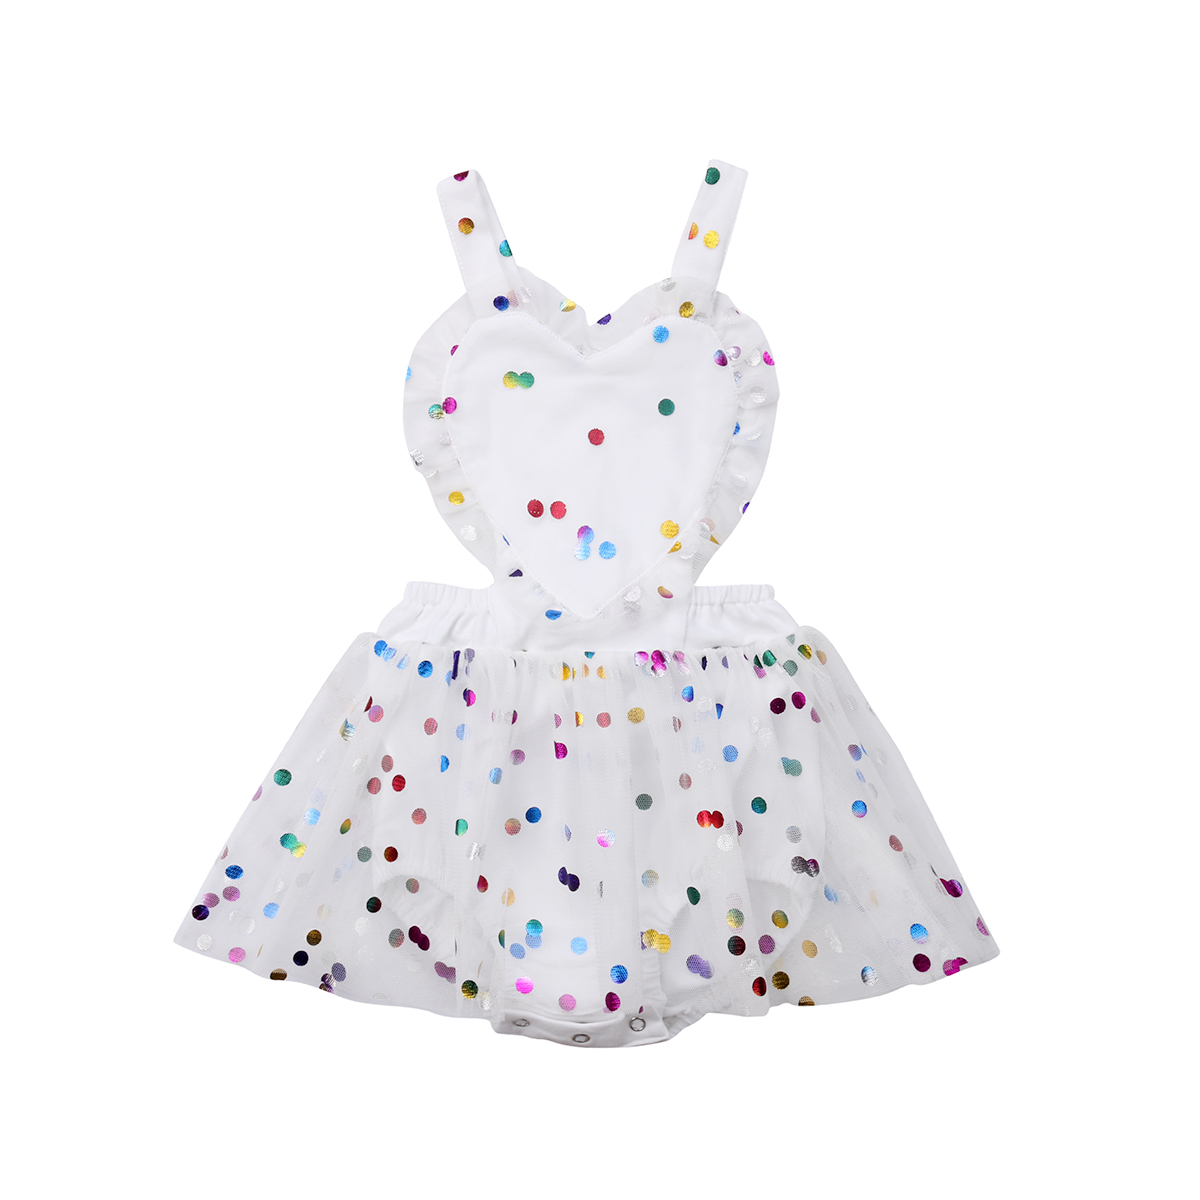 a8aba95ceee9 New Infant Newborn Baby Girls Romper Clothes Halter Backless Cute Ruffles Playsuit  Jumpsuit Dress Clothing Baby